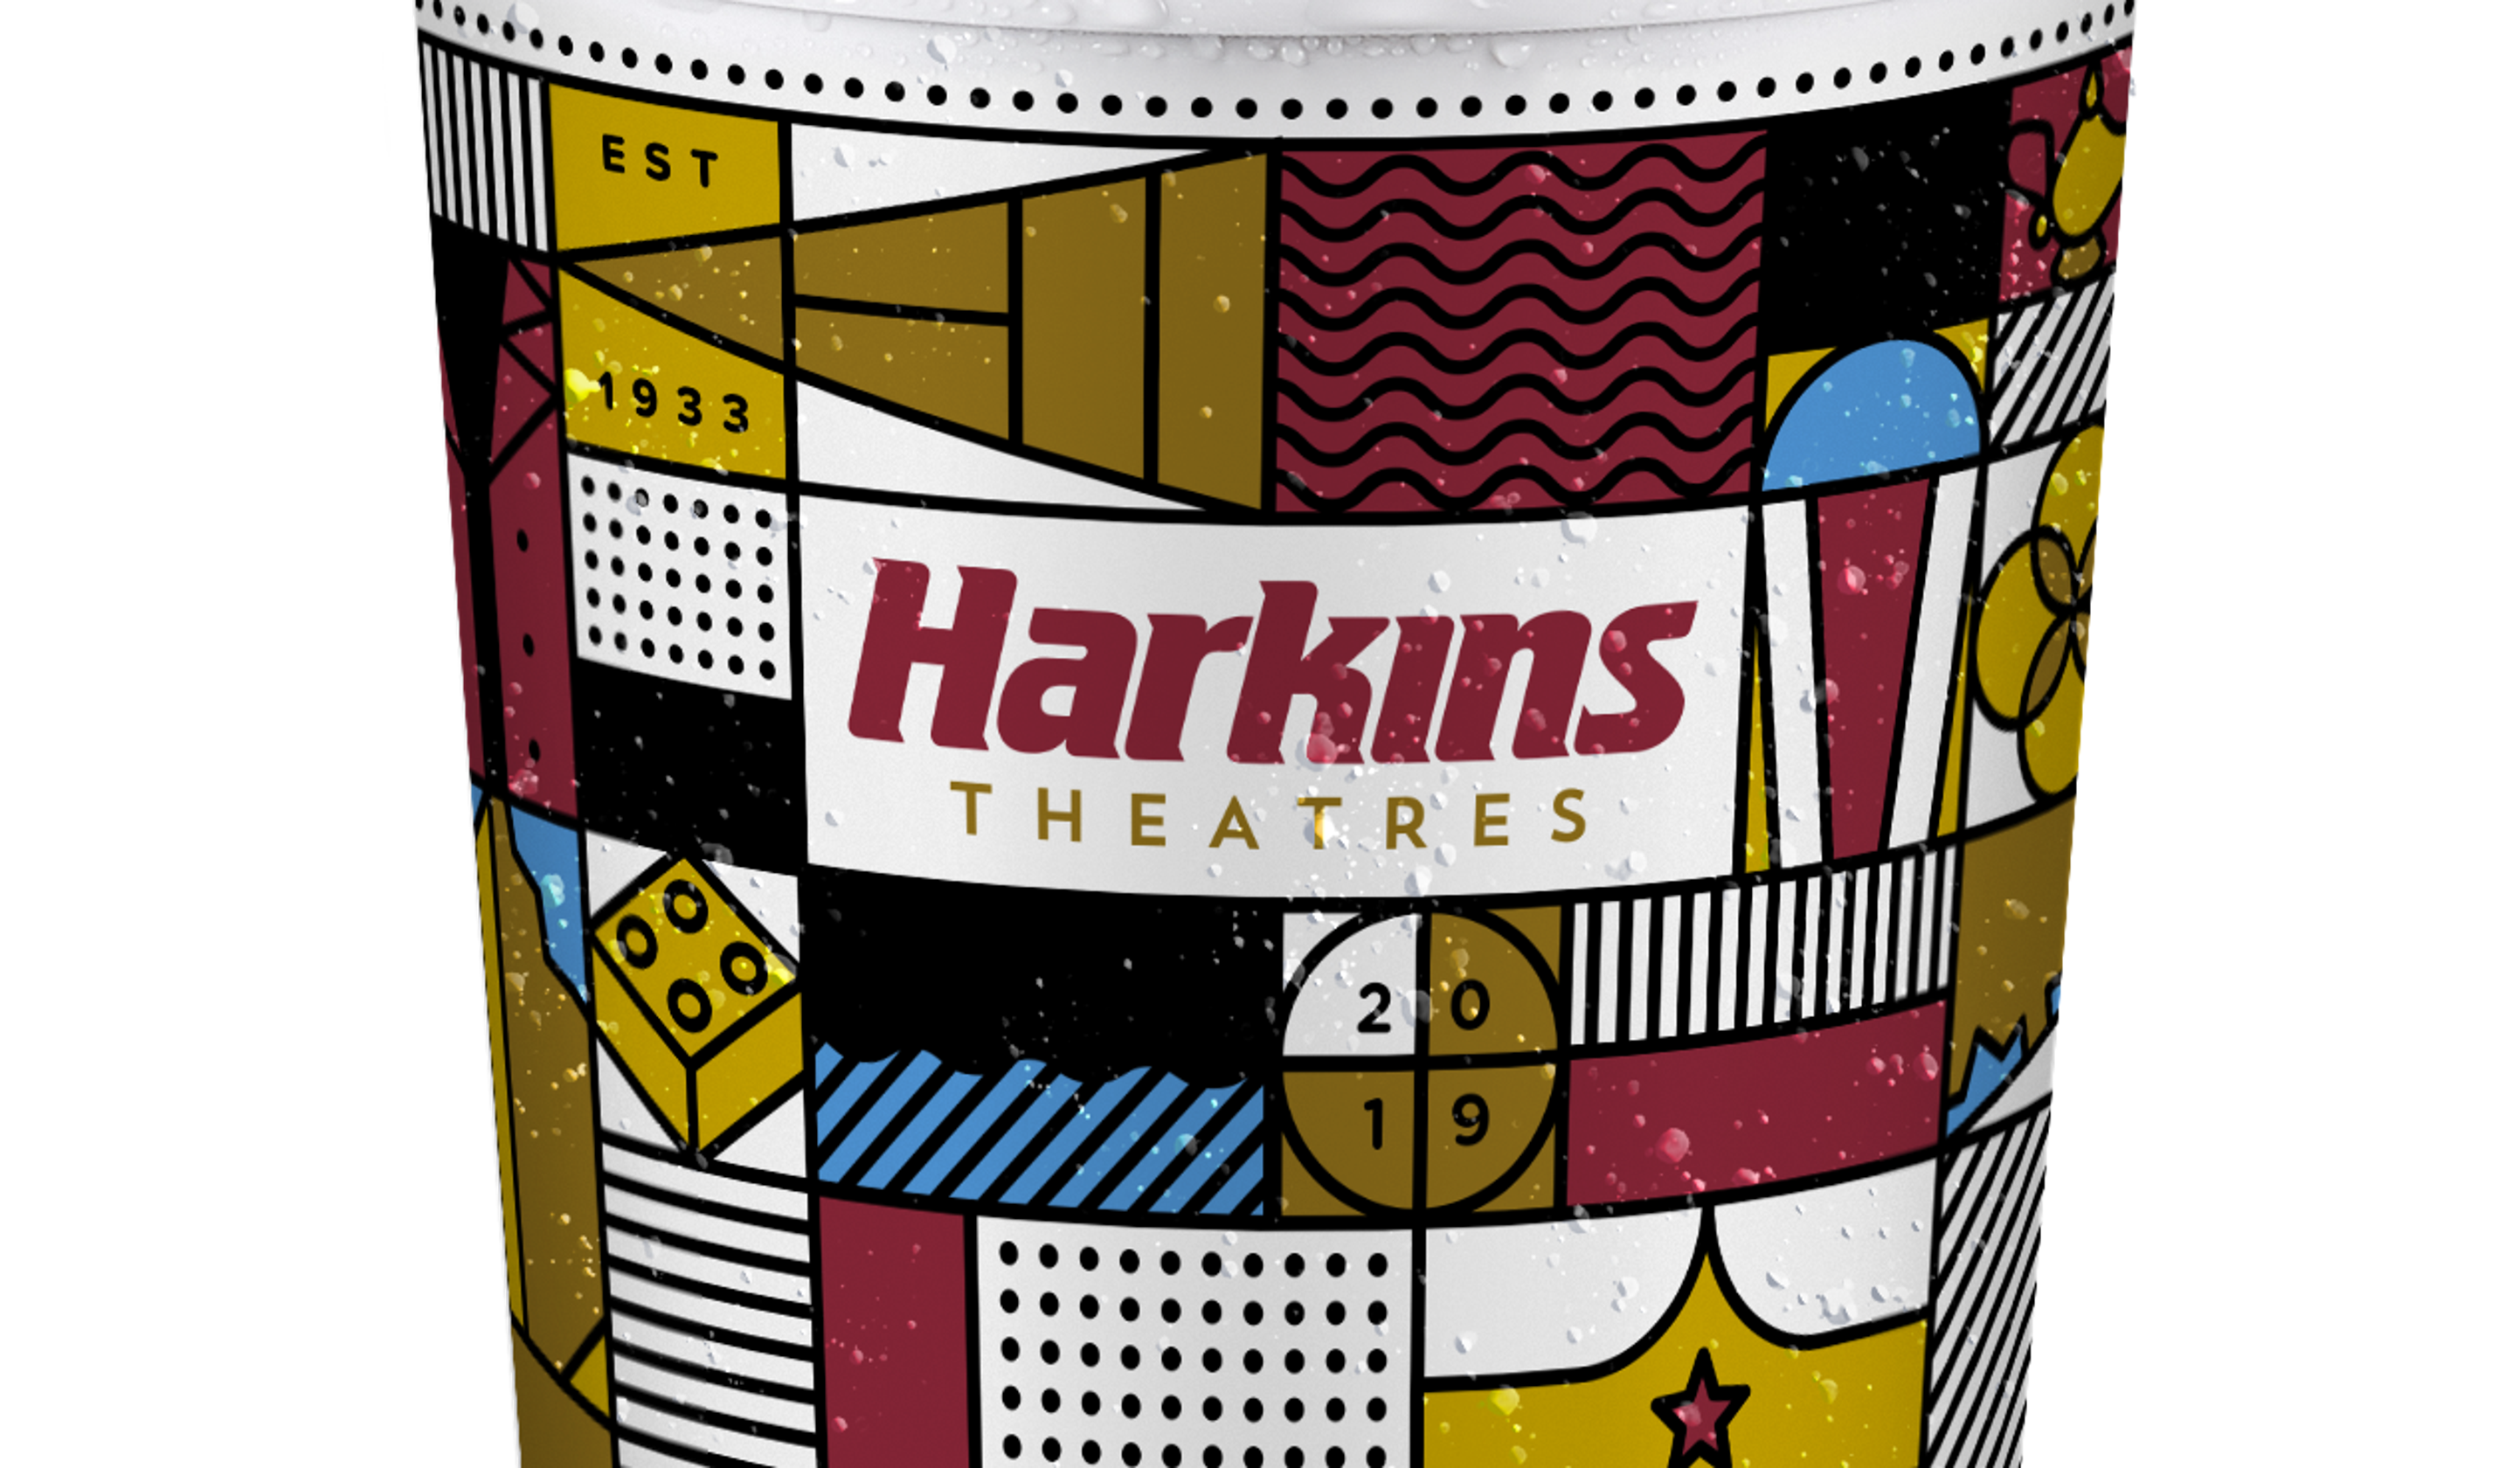 Attention, moviegoers: 2019 Harkins loyalty cup is now available